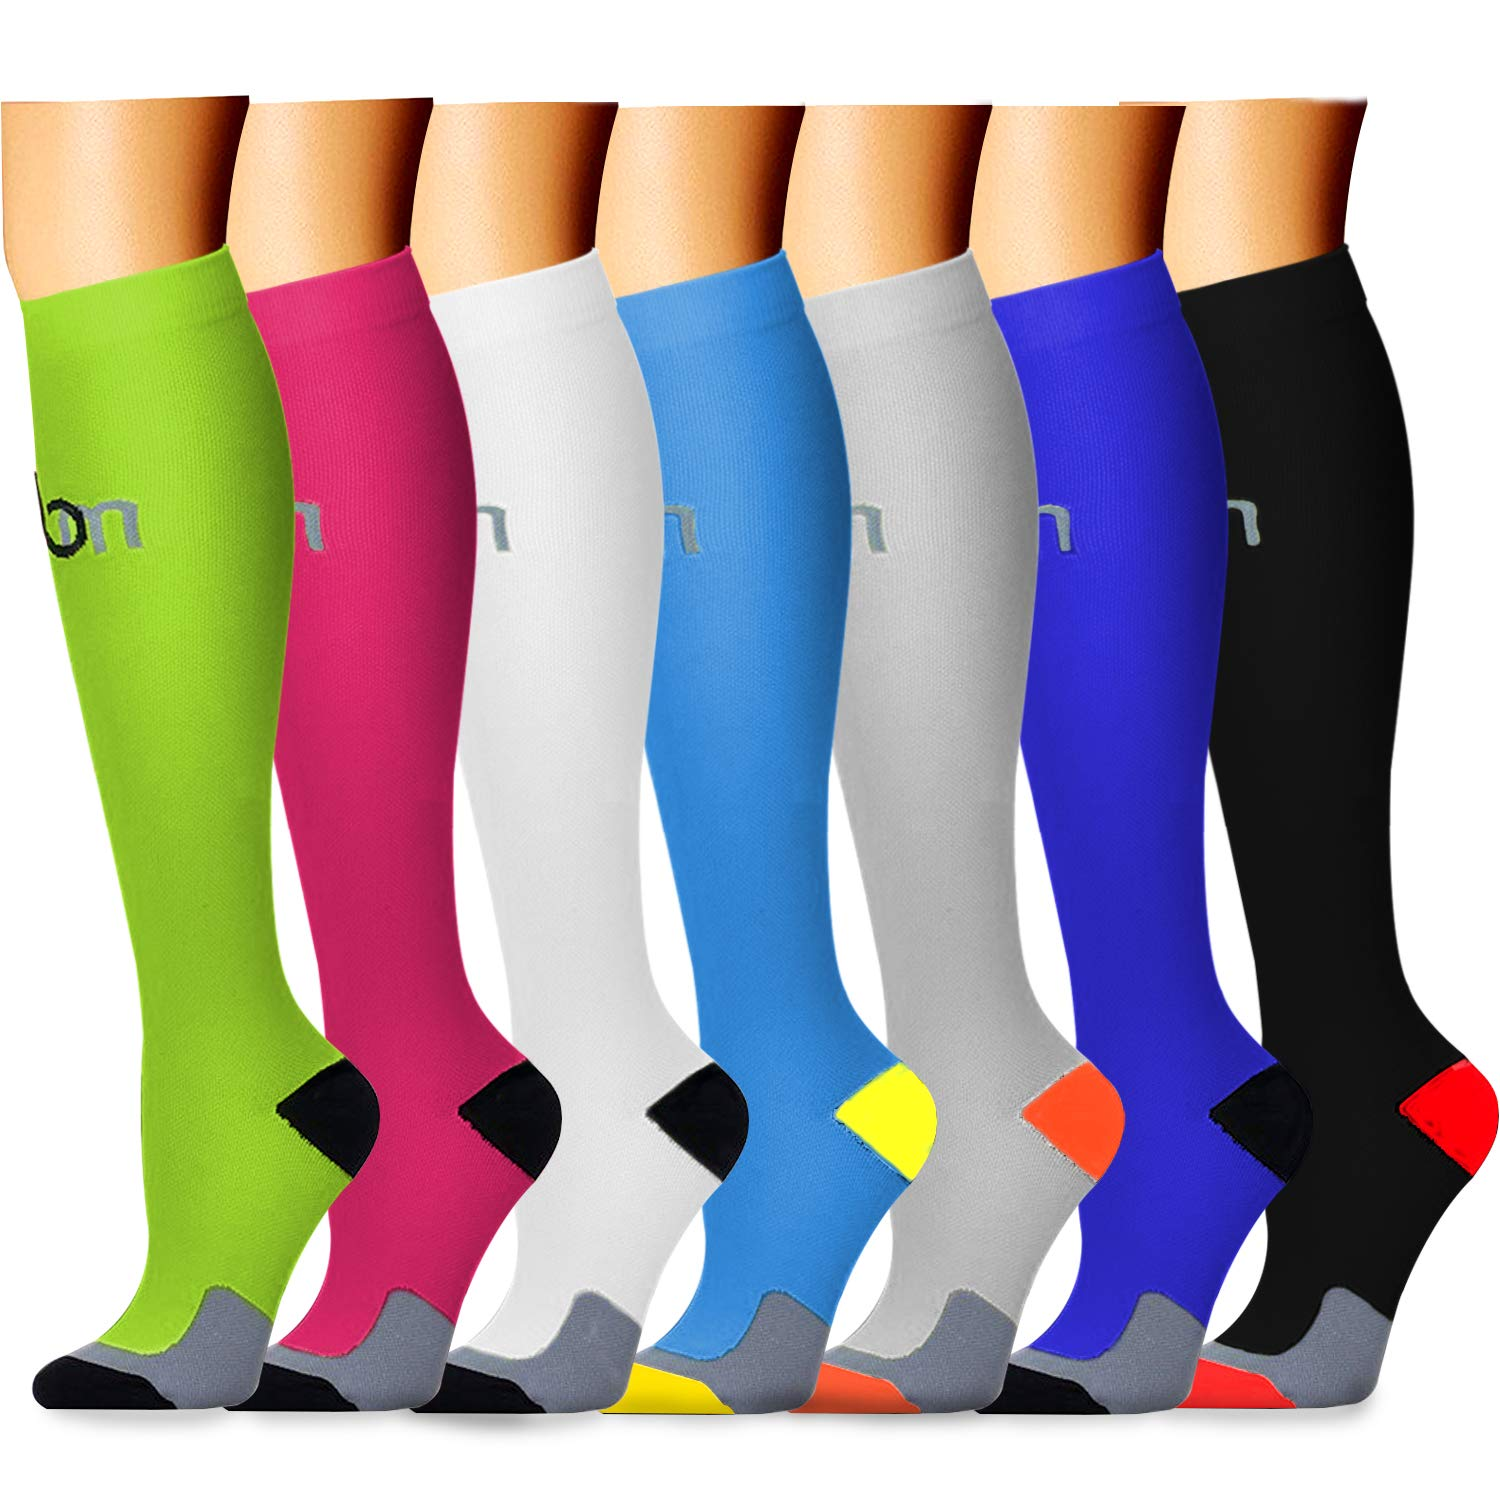 CHARMKING Compression Socks 15-20 mmHg is BEST Graduated Athletic & Medical for Men & Women Running, Travel, Nurses, Pregnant - Boost Performance, Blood Circulation & Recovery(Small/Medium,Assorted 2)